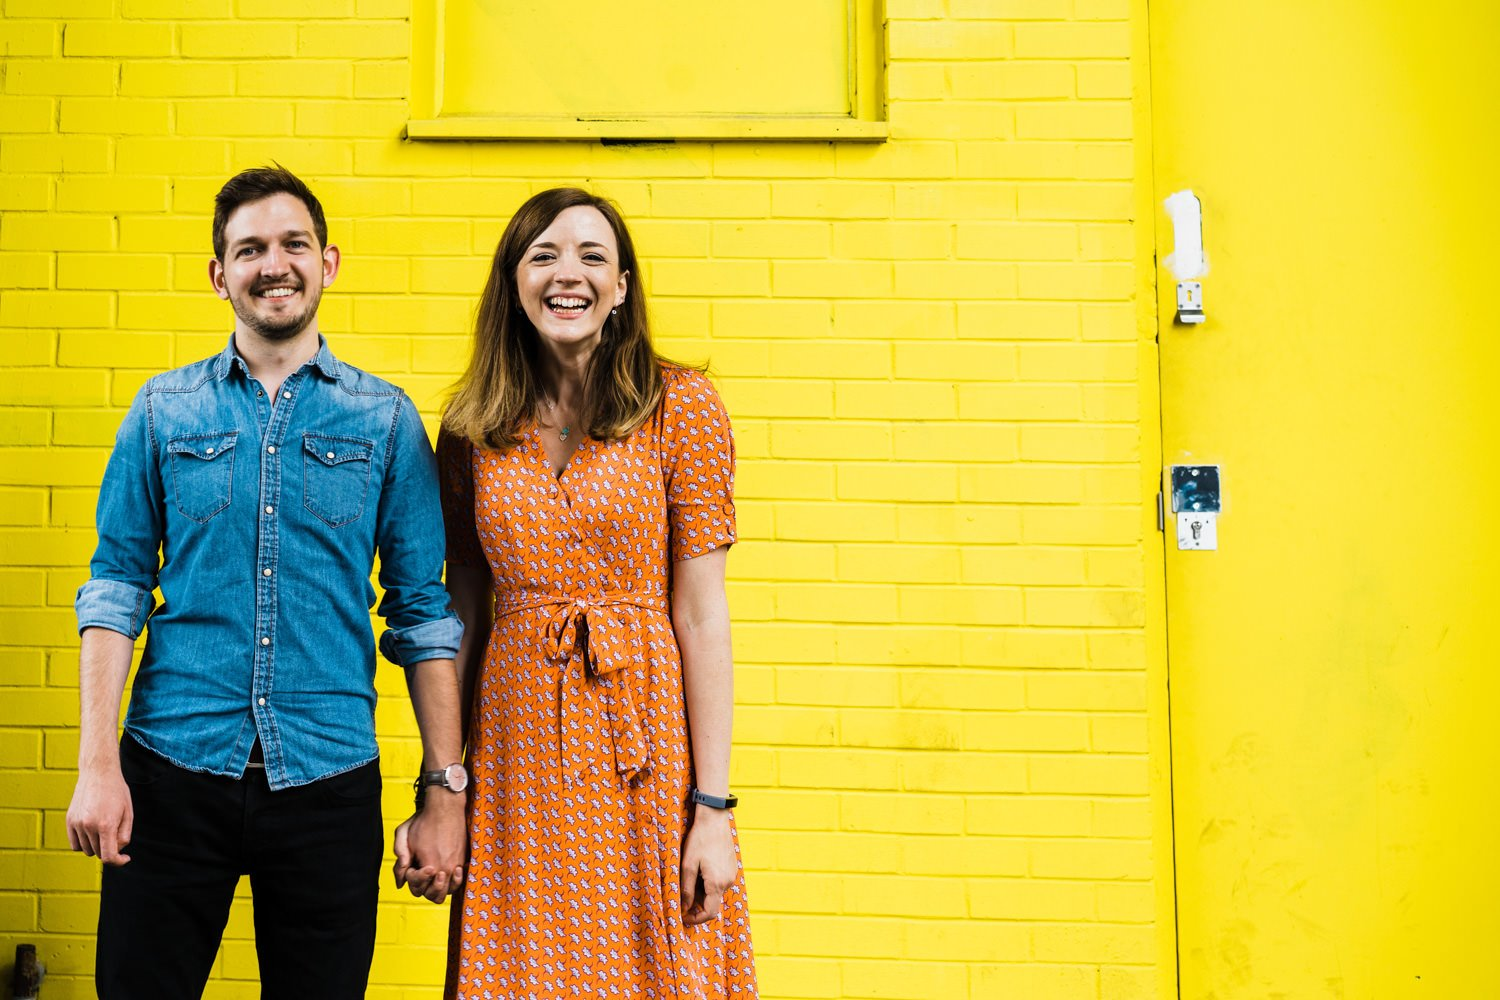 Couple against a yellow backdrop in Digbeth Birmingham